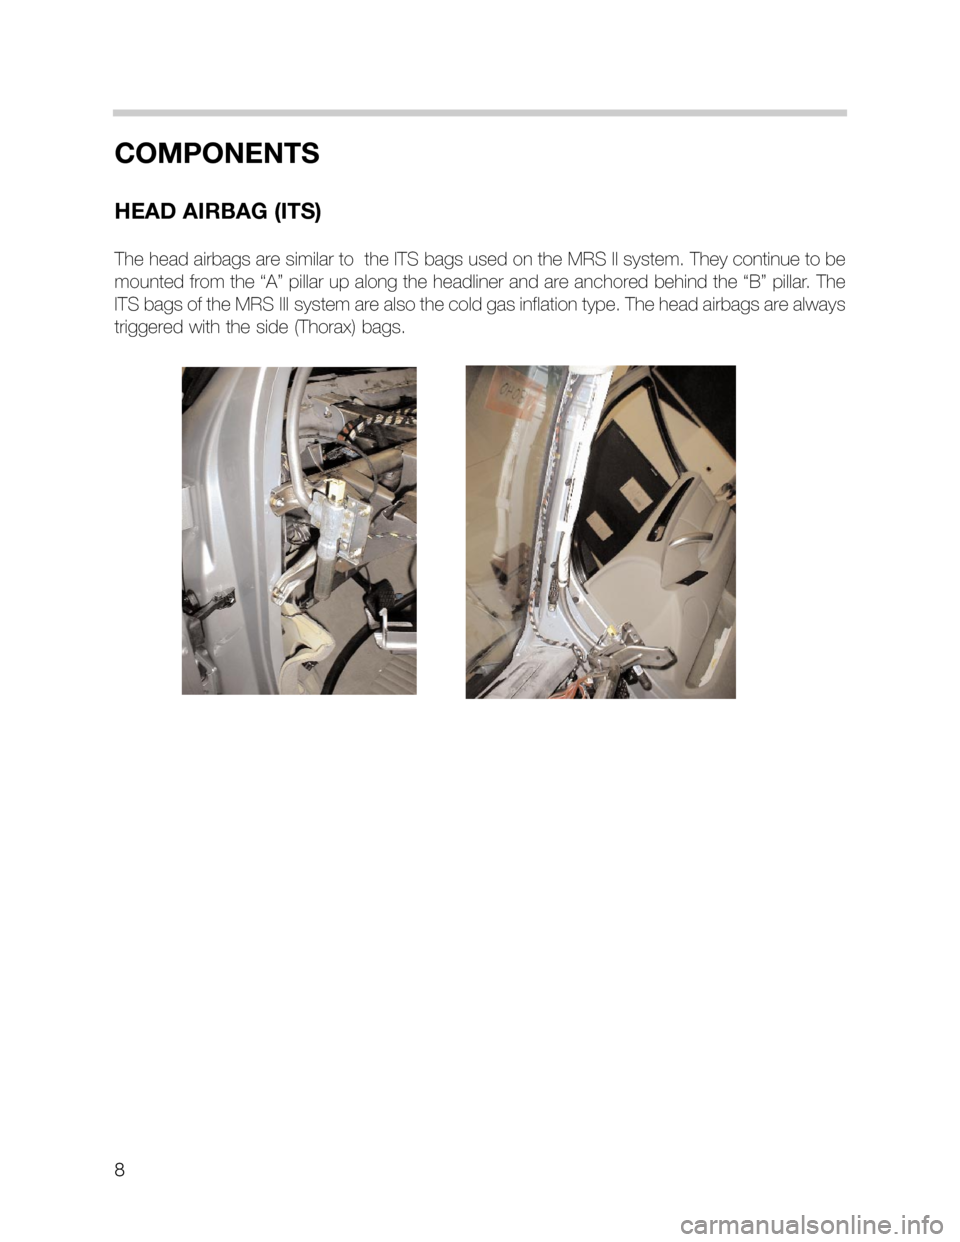 BMW 3 SERIES SEDAN 2003 E46 MRSIII Multiple Restraint System Manual, Page 8